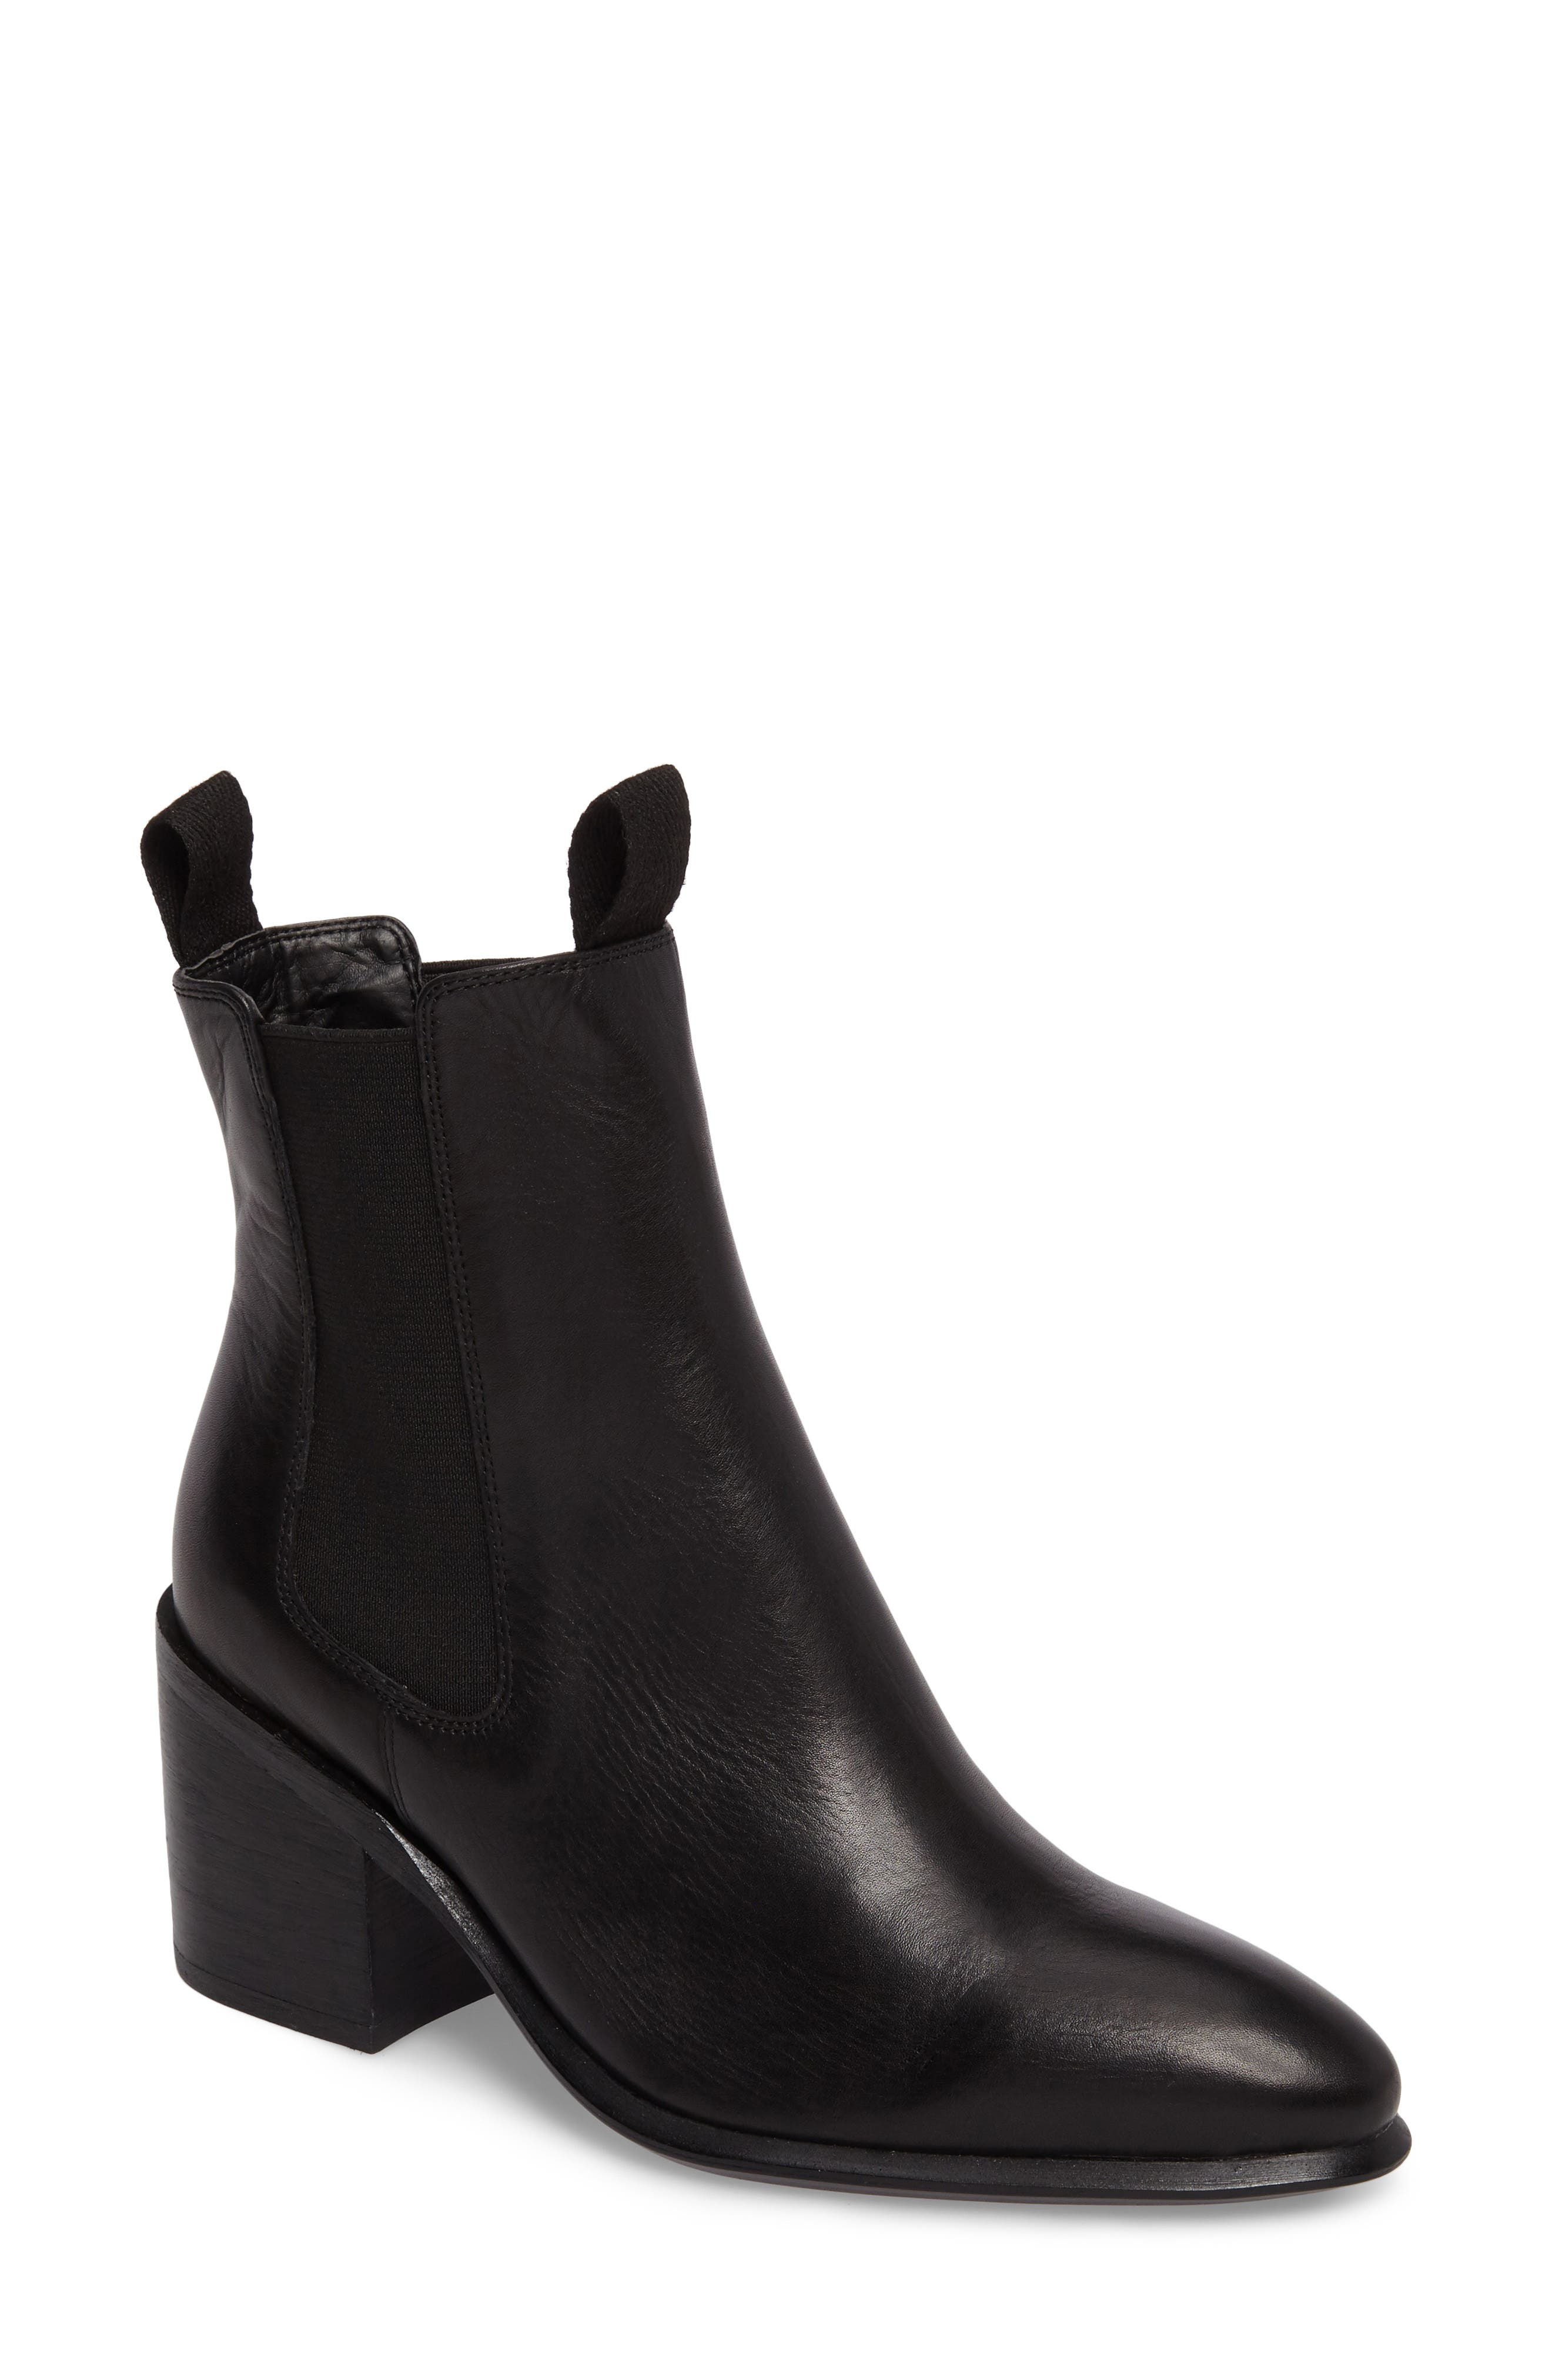 TONY BIANCO Hampton Bootie in Black Leather